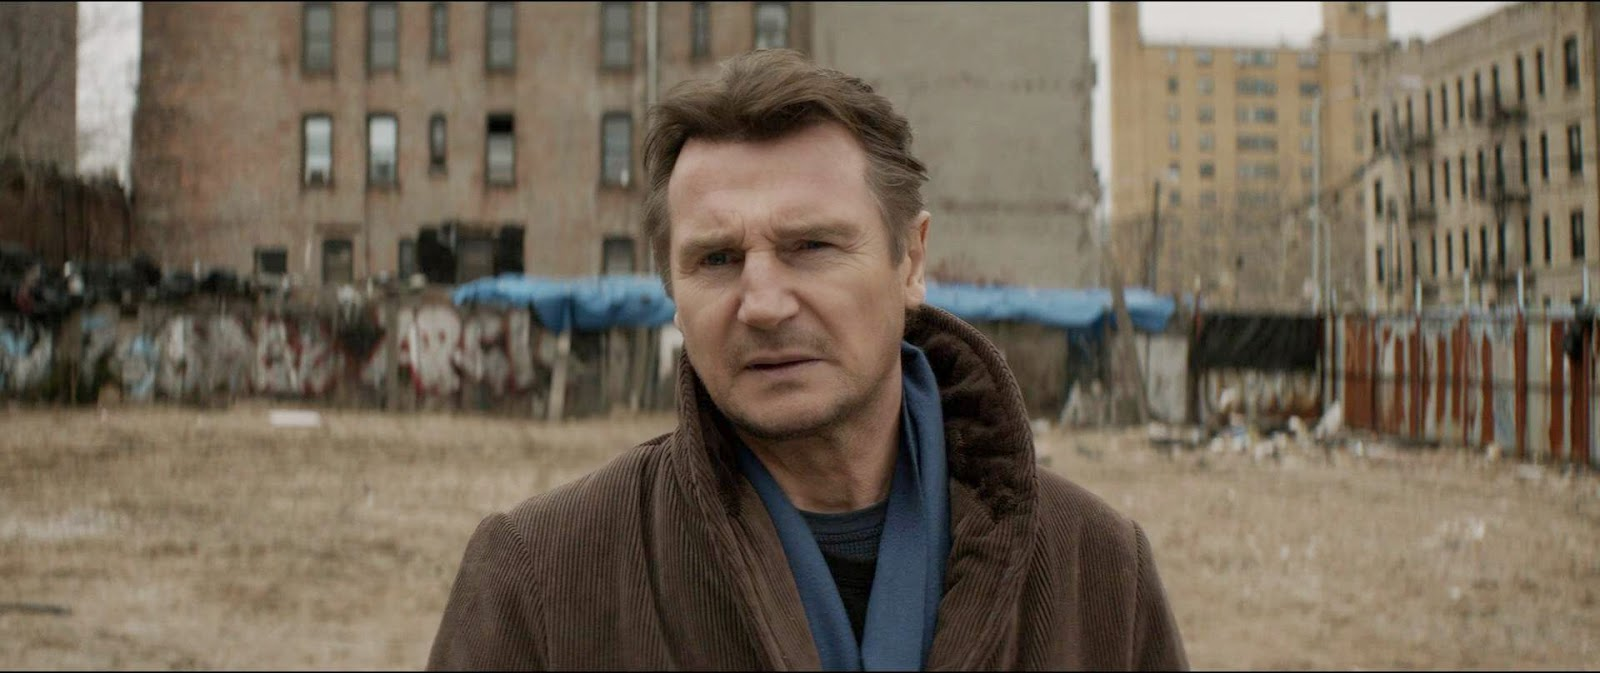 A Walk Among The Tombstones (2014) S2 s A Walk Among The Tombstones (2014)